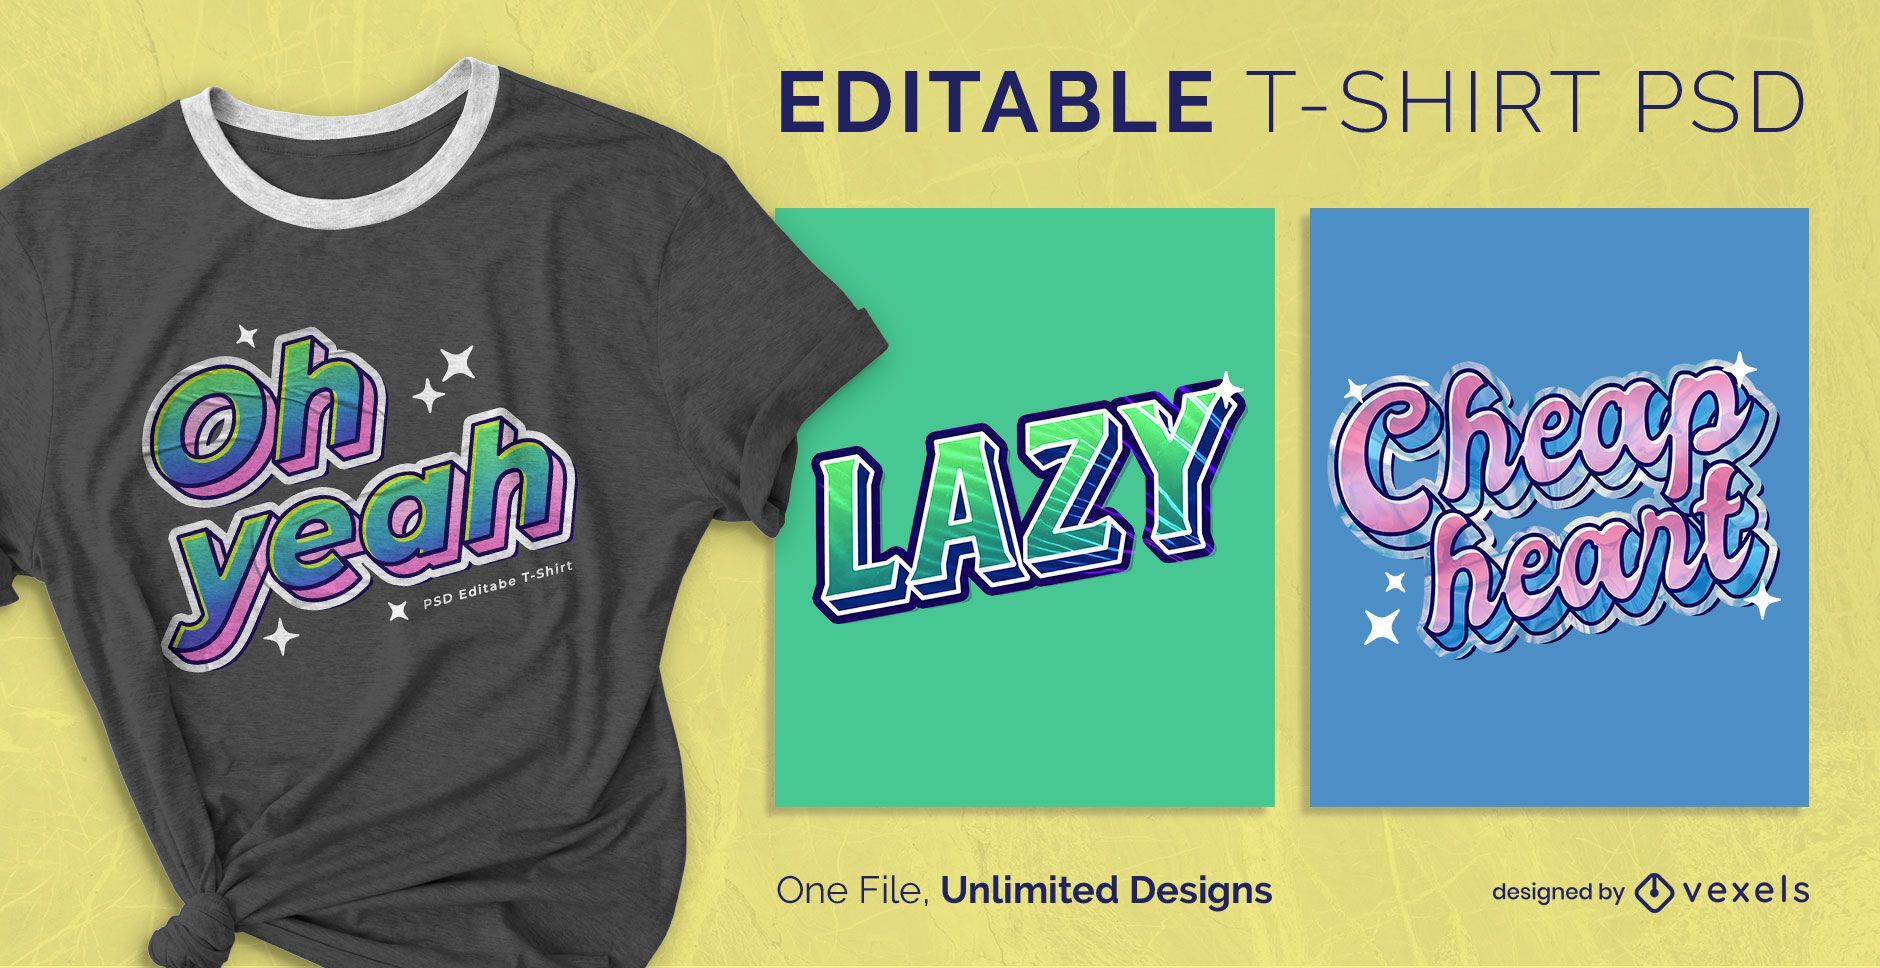 Retro sticker quotes scalable t-shirt psd